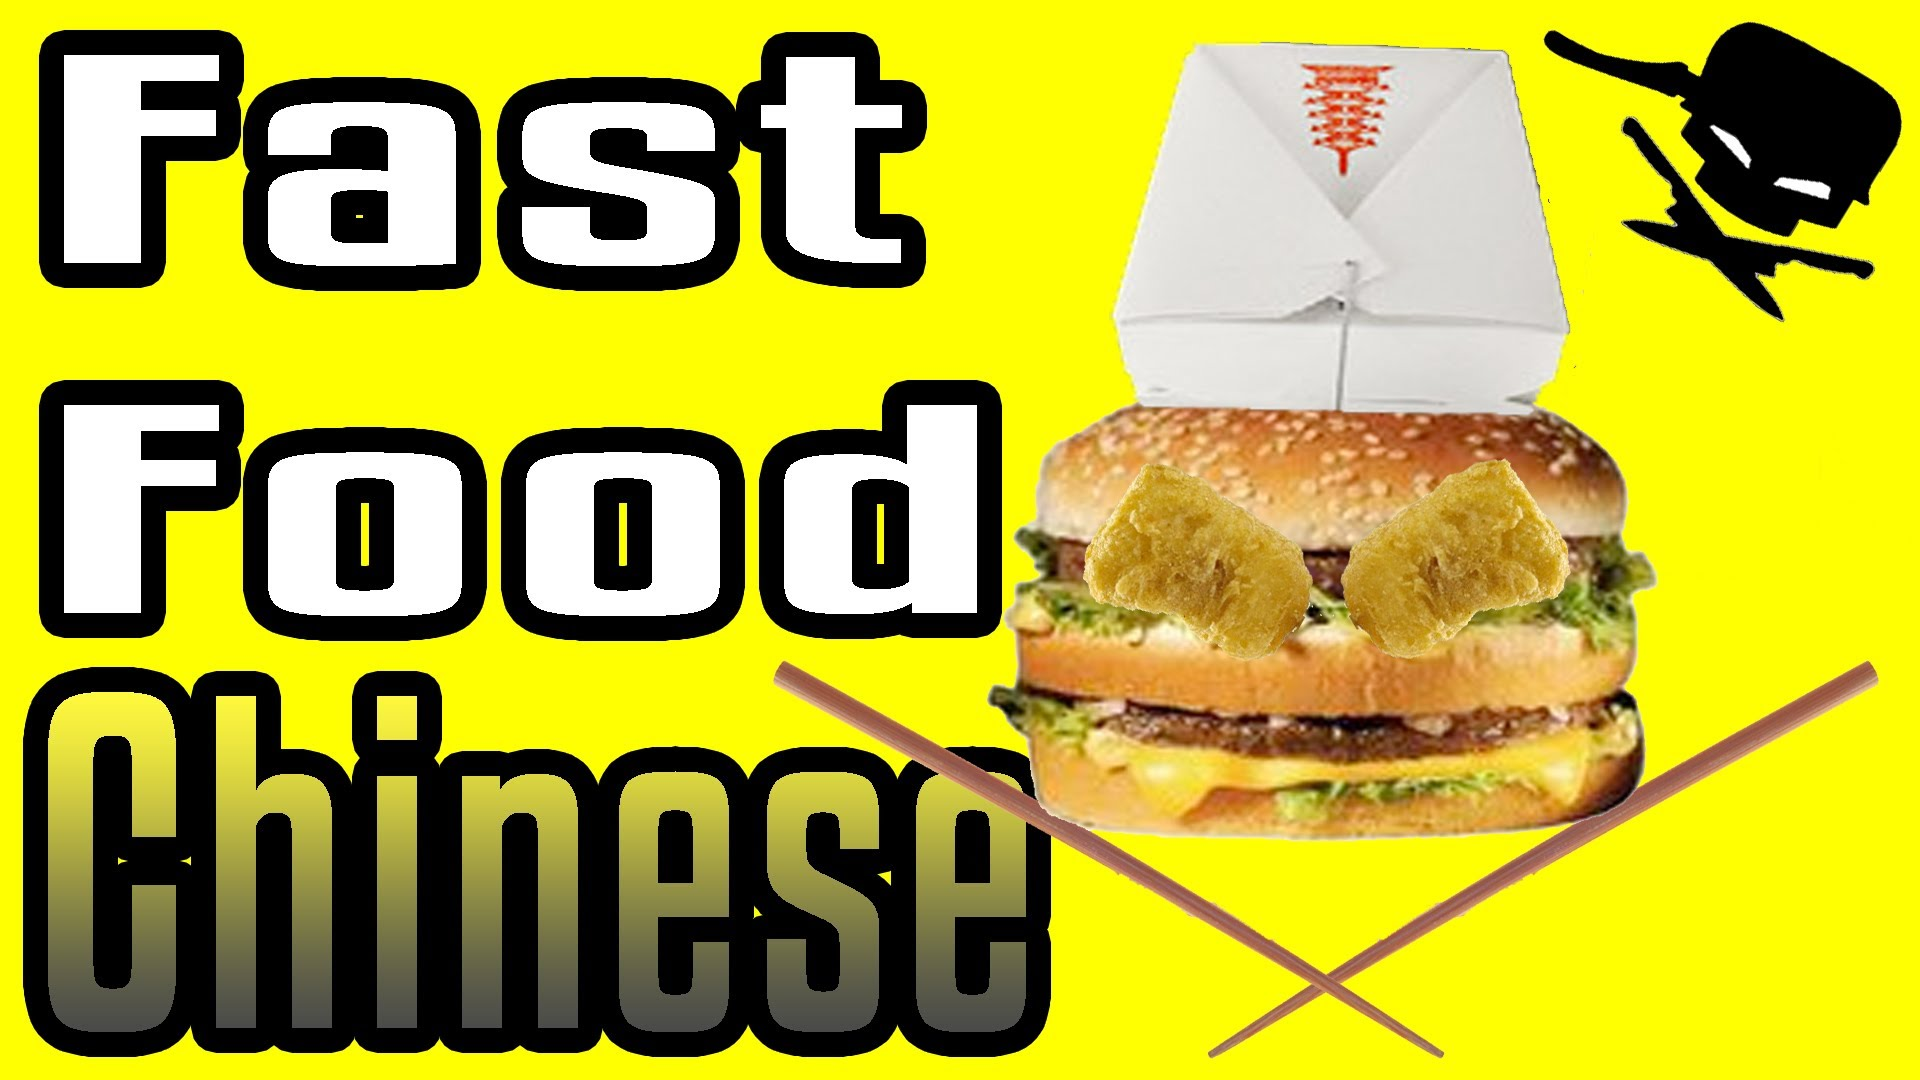 1920x1080 Fast Food Chinese Food